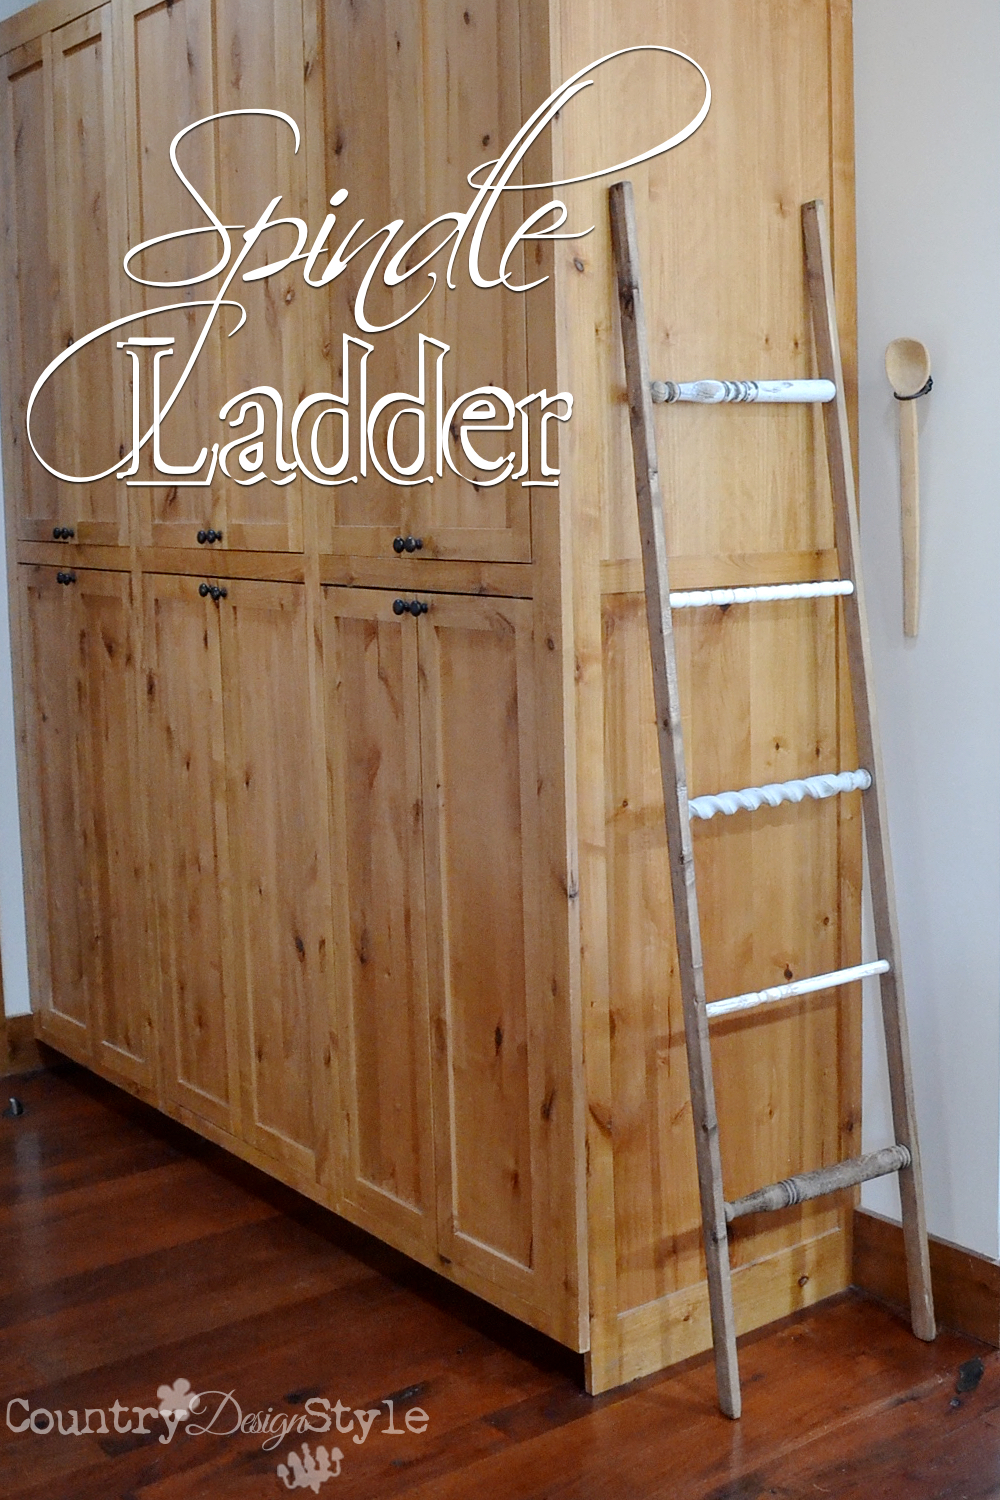 spindle-ladder-country-design-style-pn2